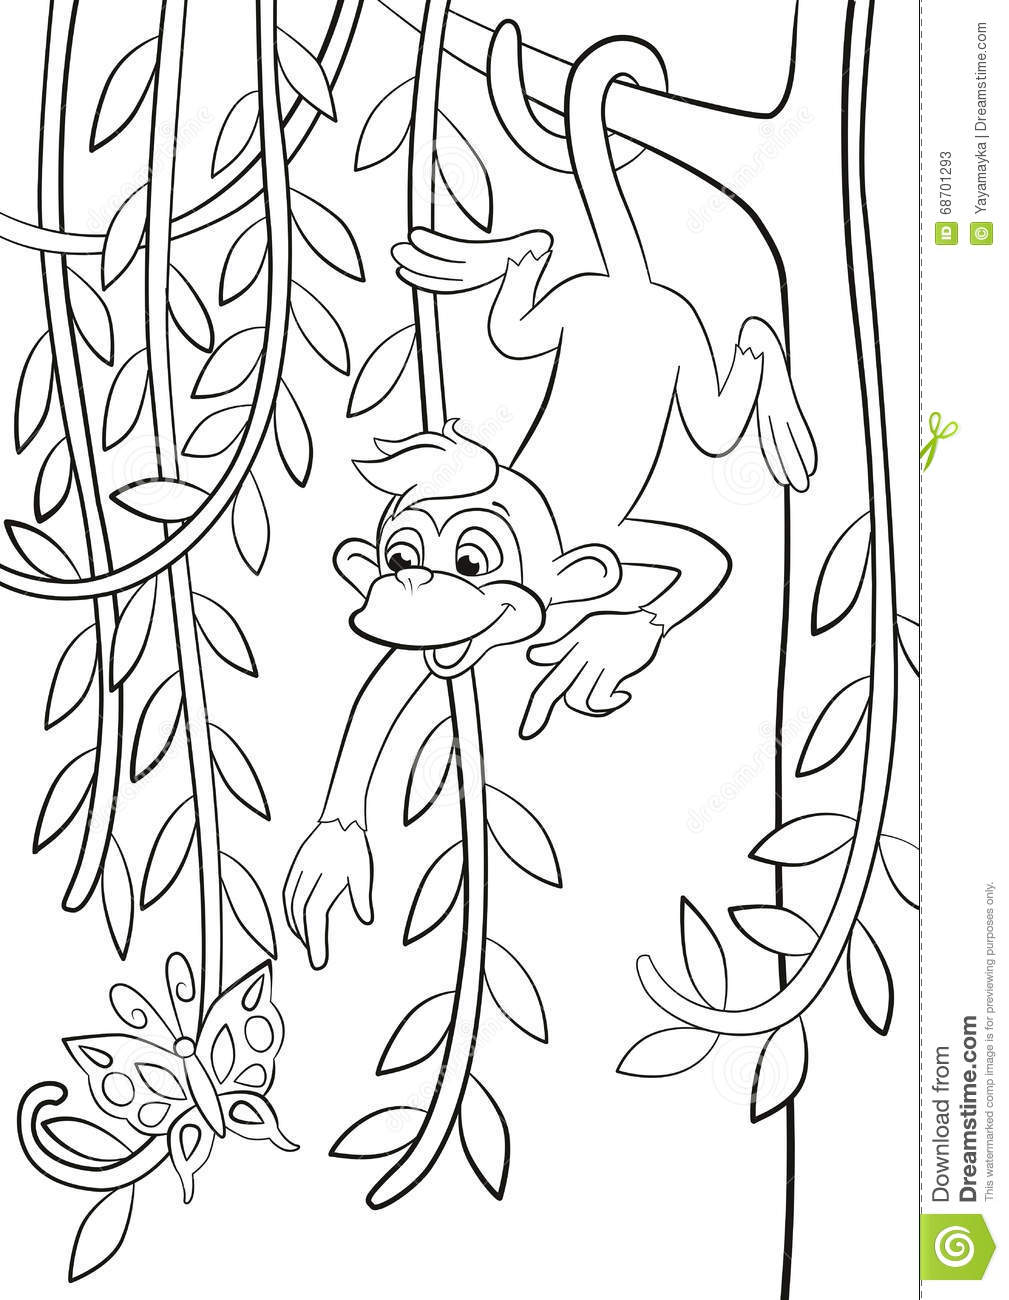 monkey in hanging on the tree branch stock vector image 68701293